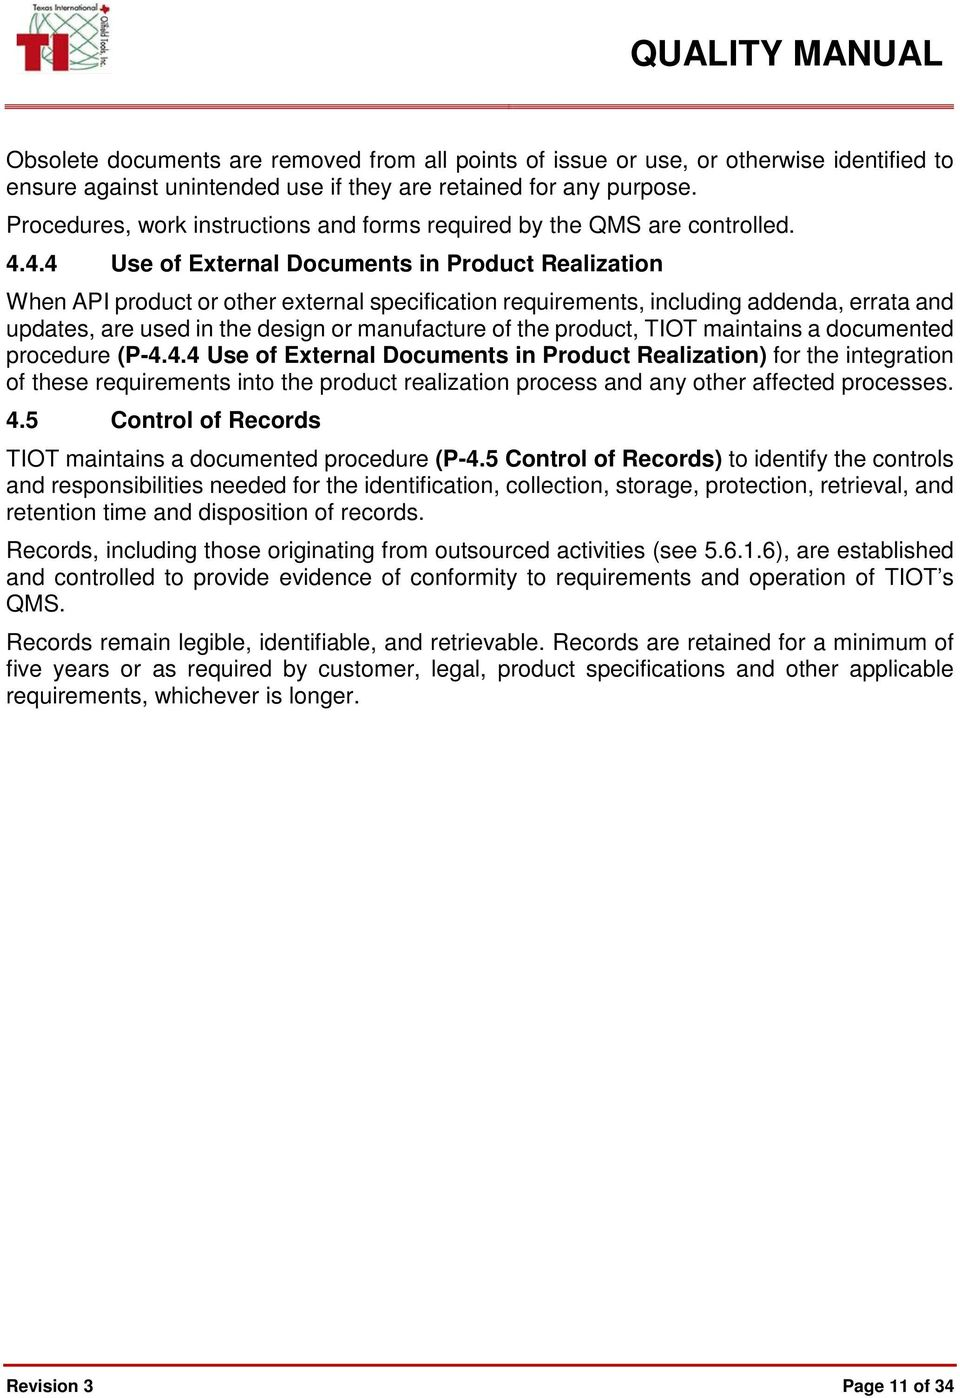 4.4 Use of External Documents in Product Realization When API product or other external specification requirements, including addenda, errata and updates, are used in the design or manufacture of the